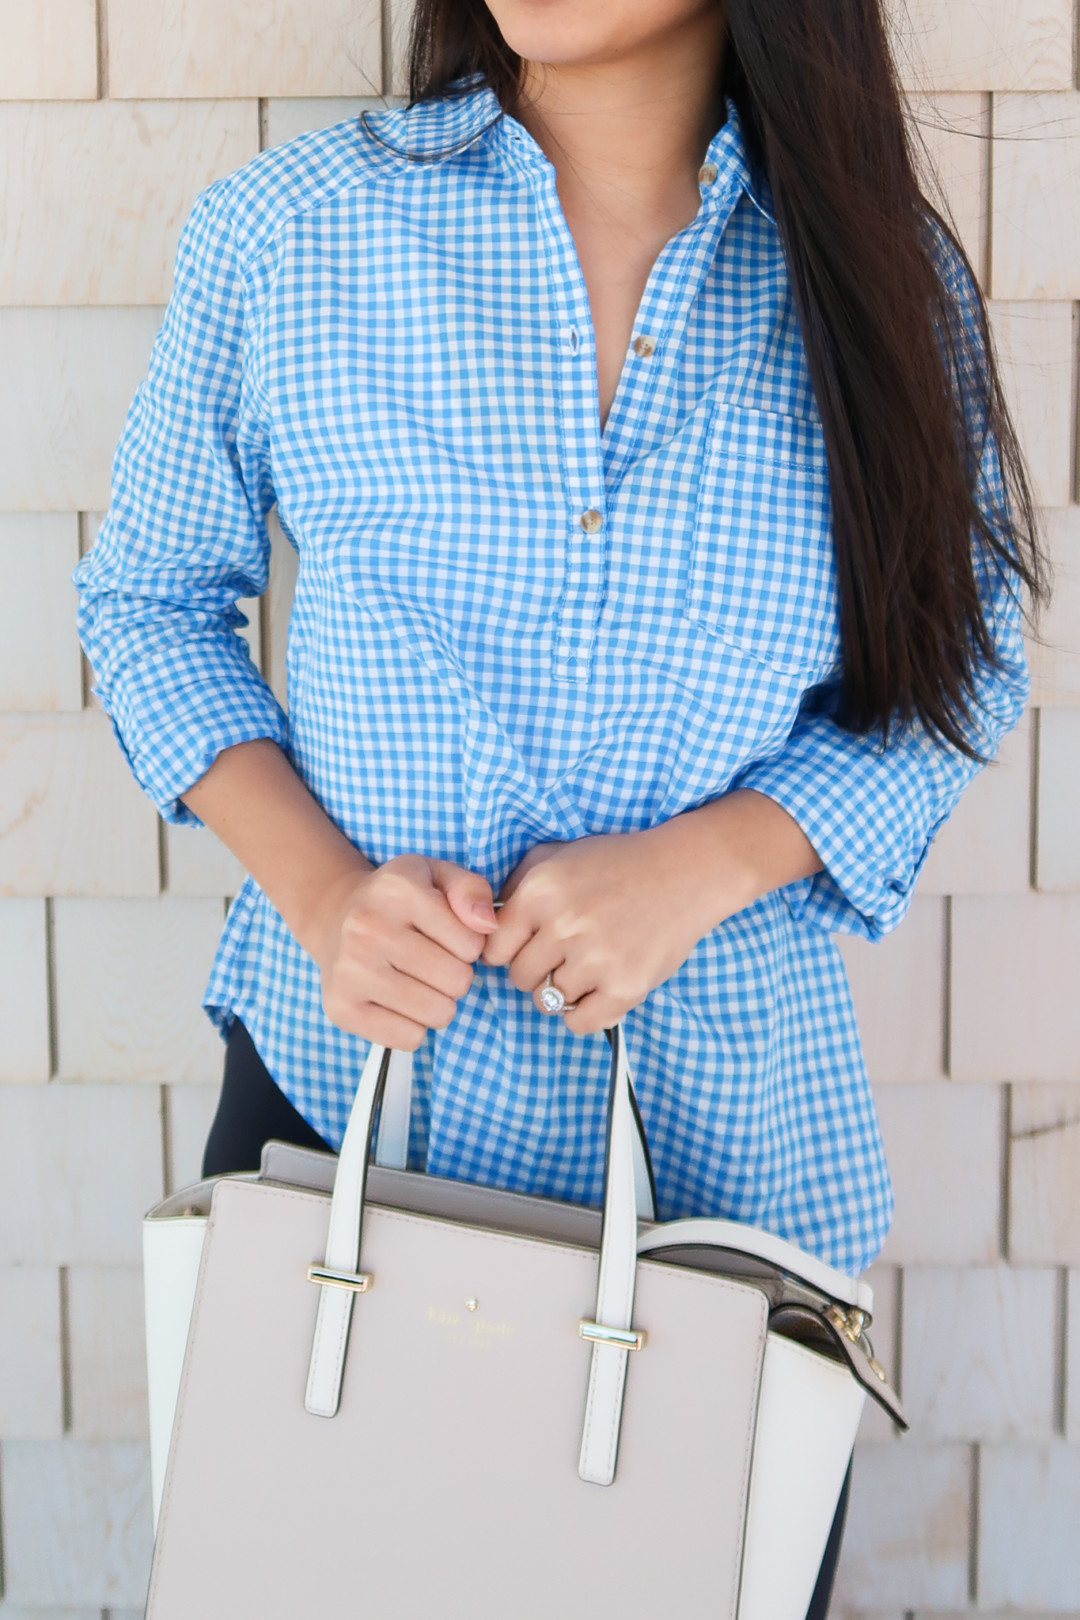 New England style: blue gingham shirt and Kate Spade bag